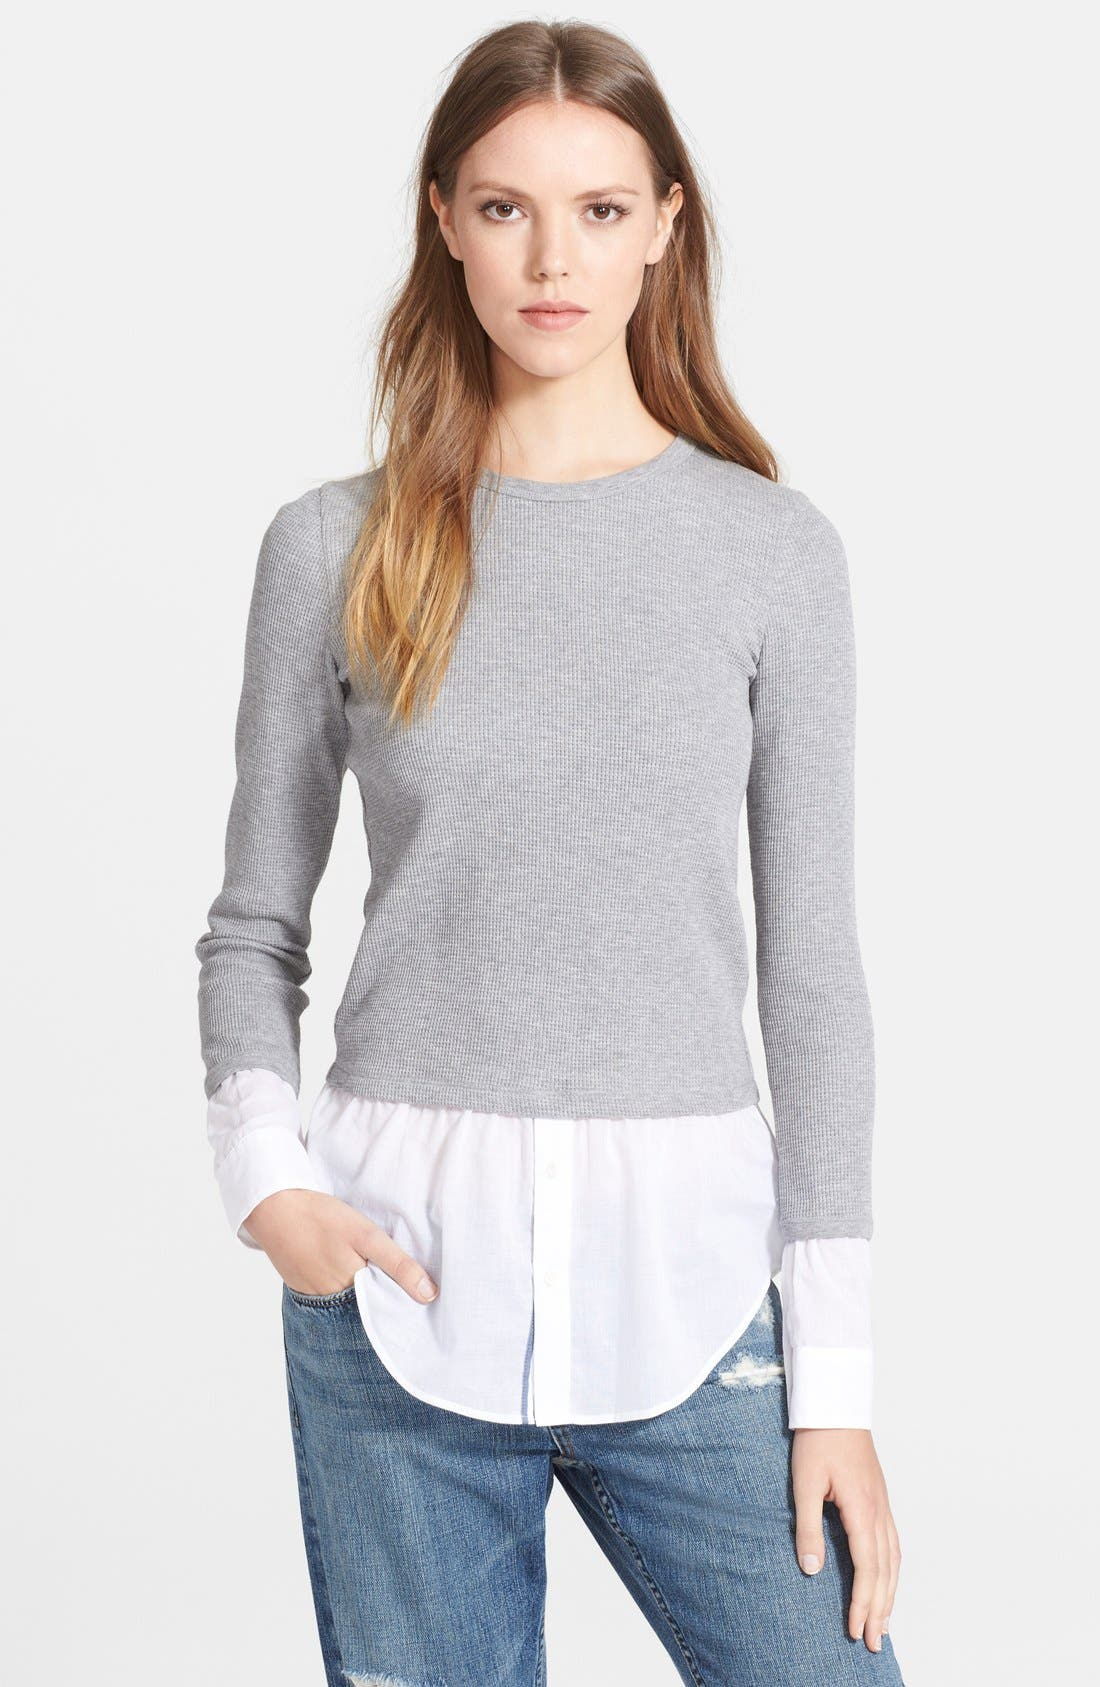 Alternate Image 1 Selected - Theory 'Mikaela' Layered Thermal Top